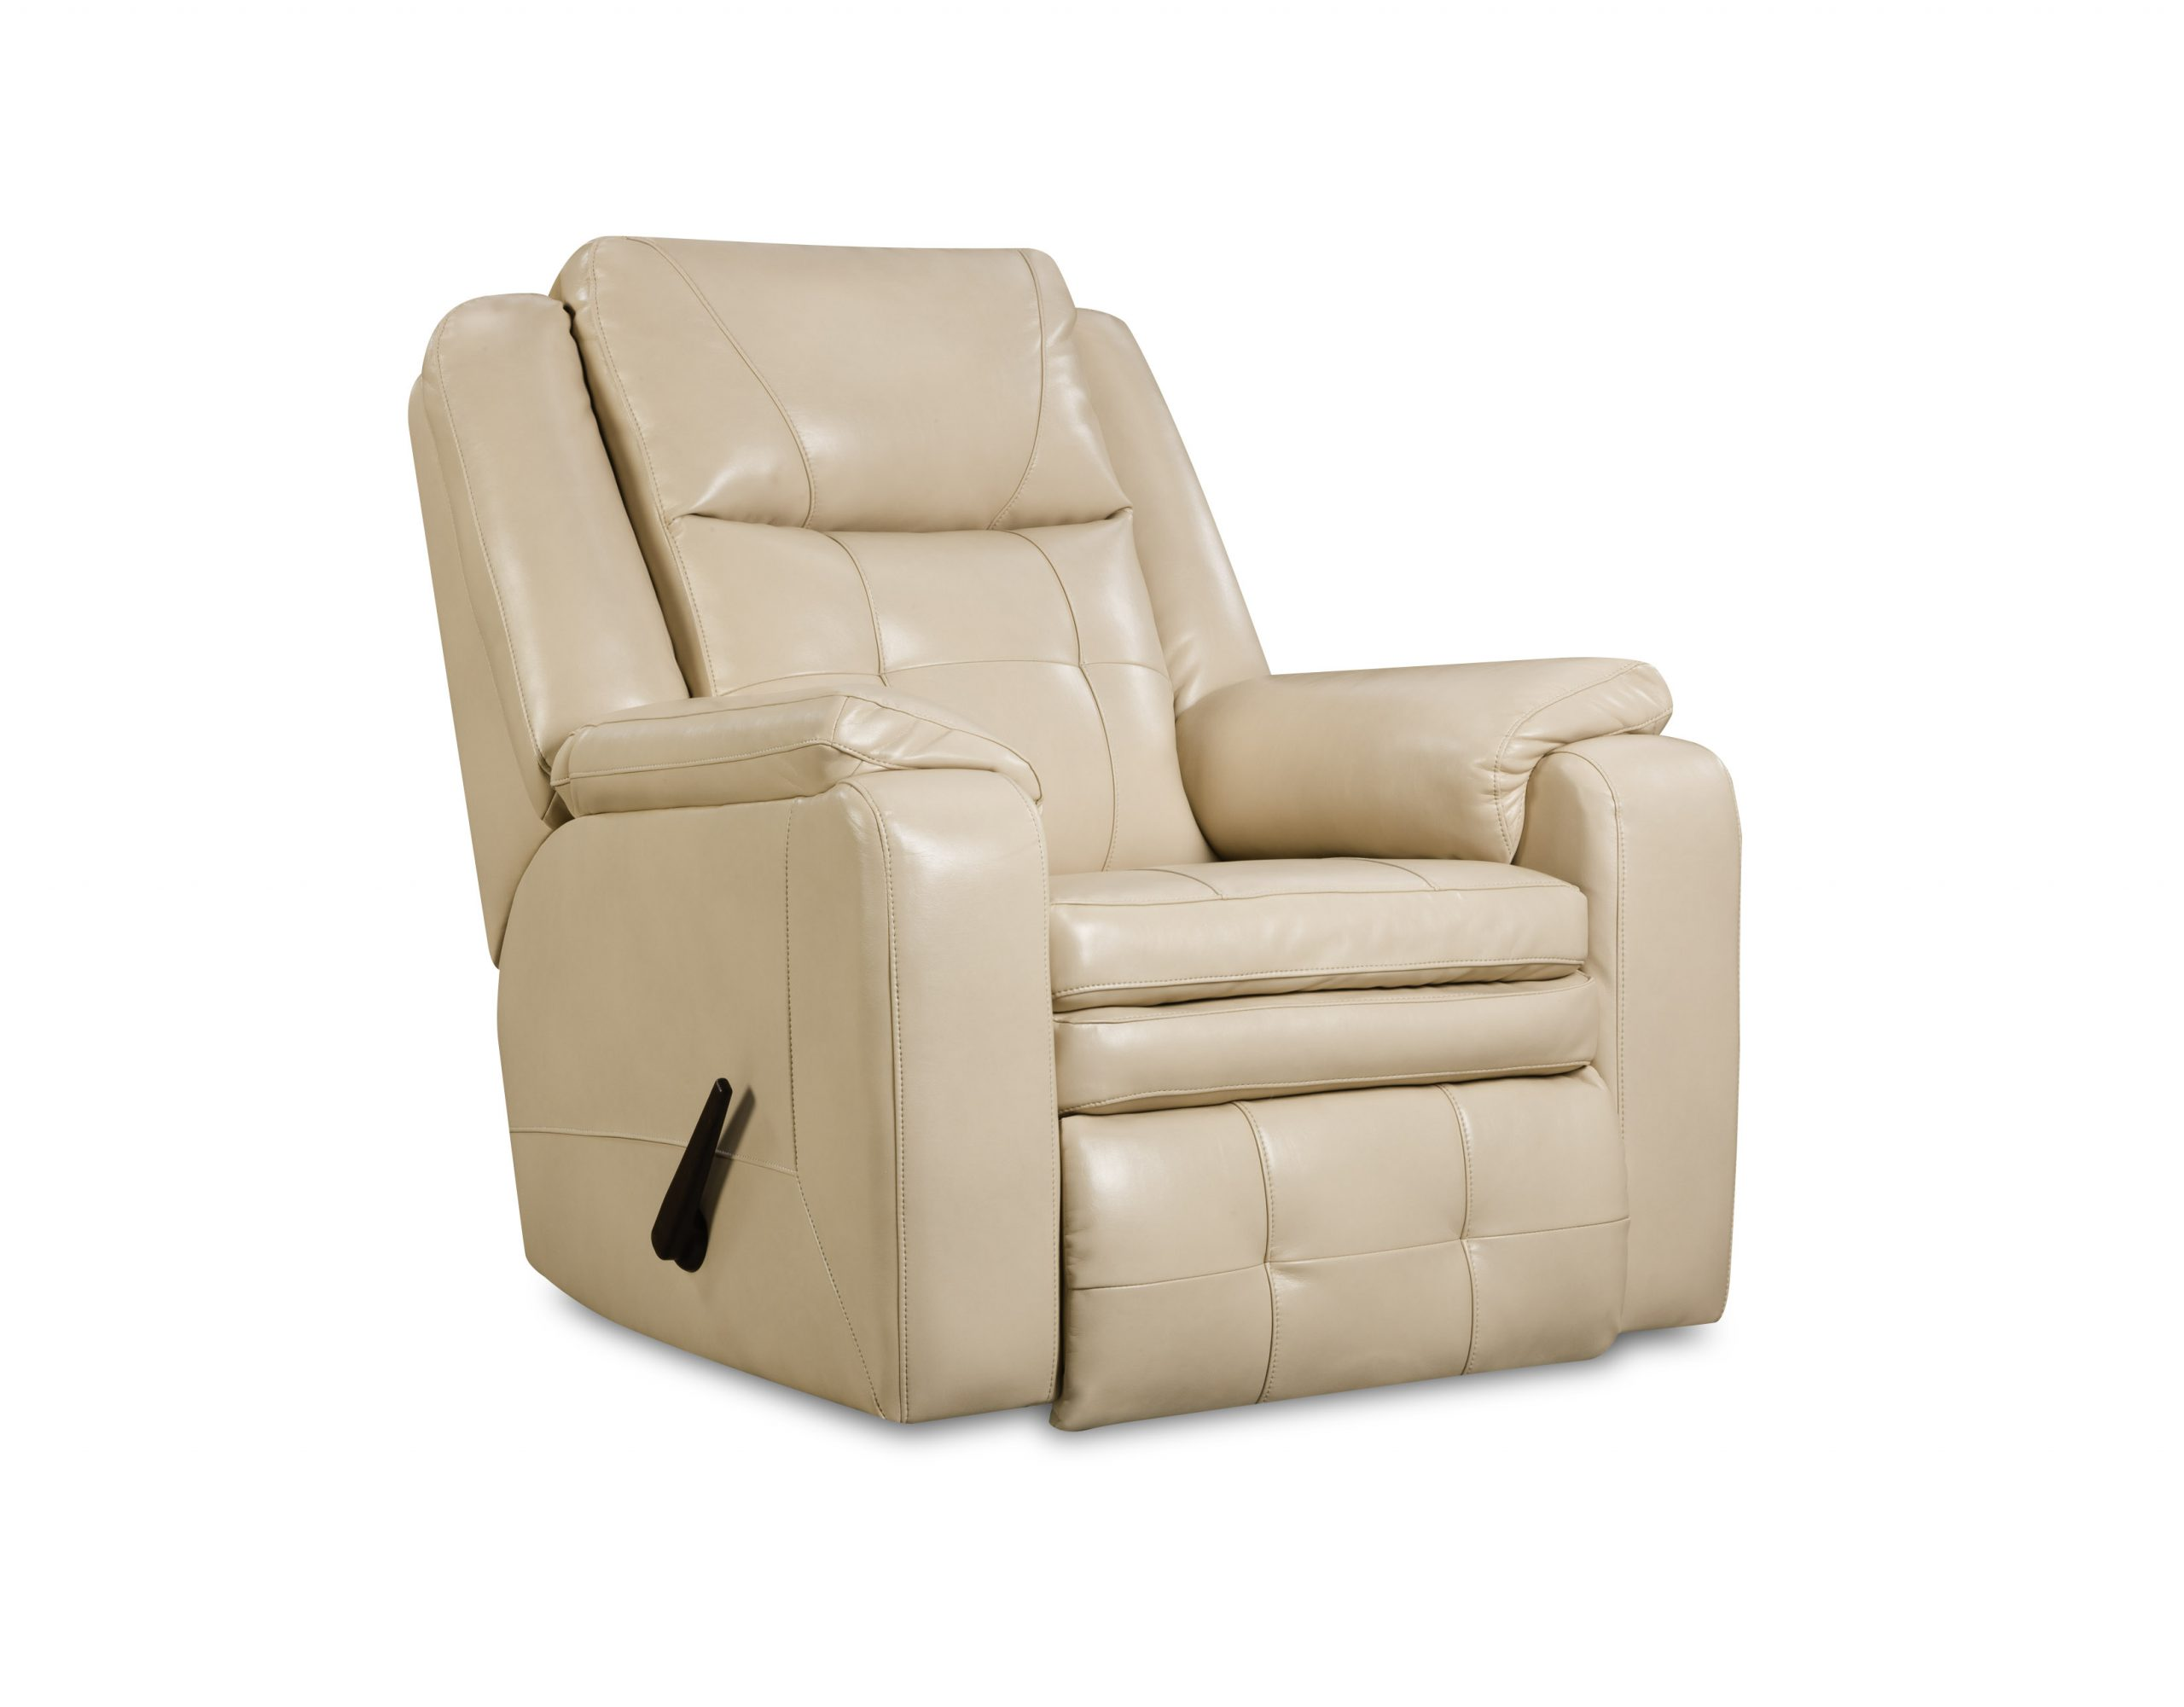 1850-p-inspire-in-250-15-hampton-champage-recliner-sweep-conns-scaled